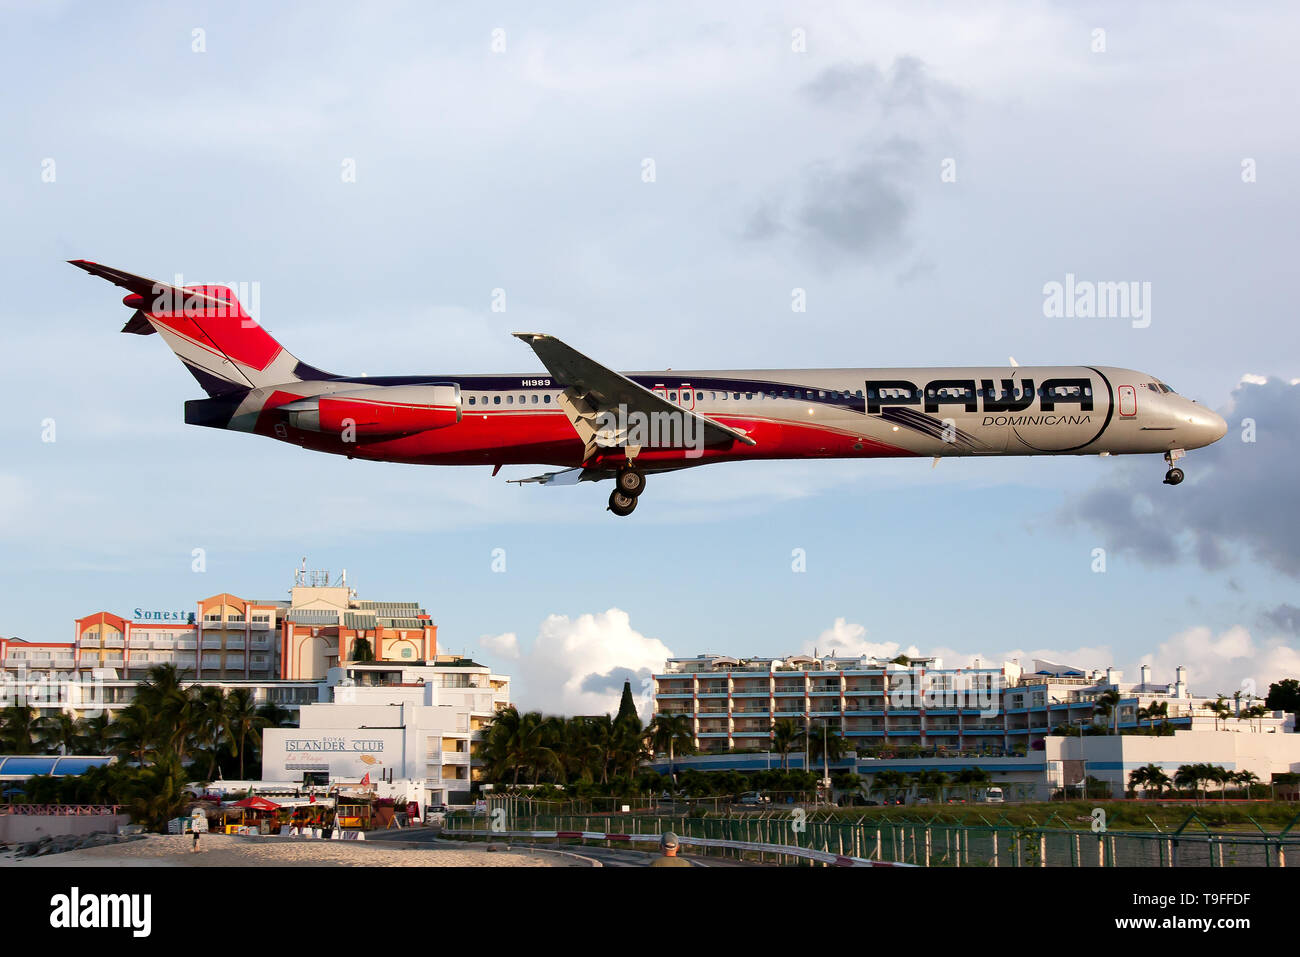 Simpson Bay, Saint Martin. 9th Dec, 2016. A PAWA Dominicana McDonnell Douglas MD-83 seen landing at airport Princess Juliana just over Maho beach. Credit: Fabrizio Gandolfo/SOPA Images/ZUMA Wire/Alamy Live News - Stock Image